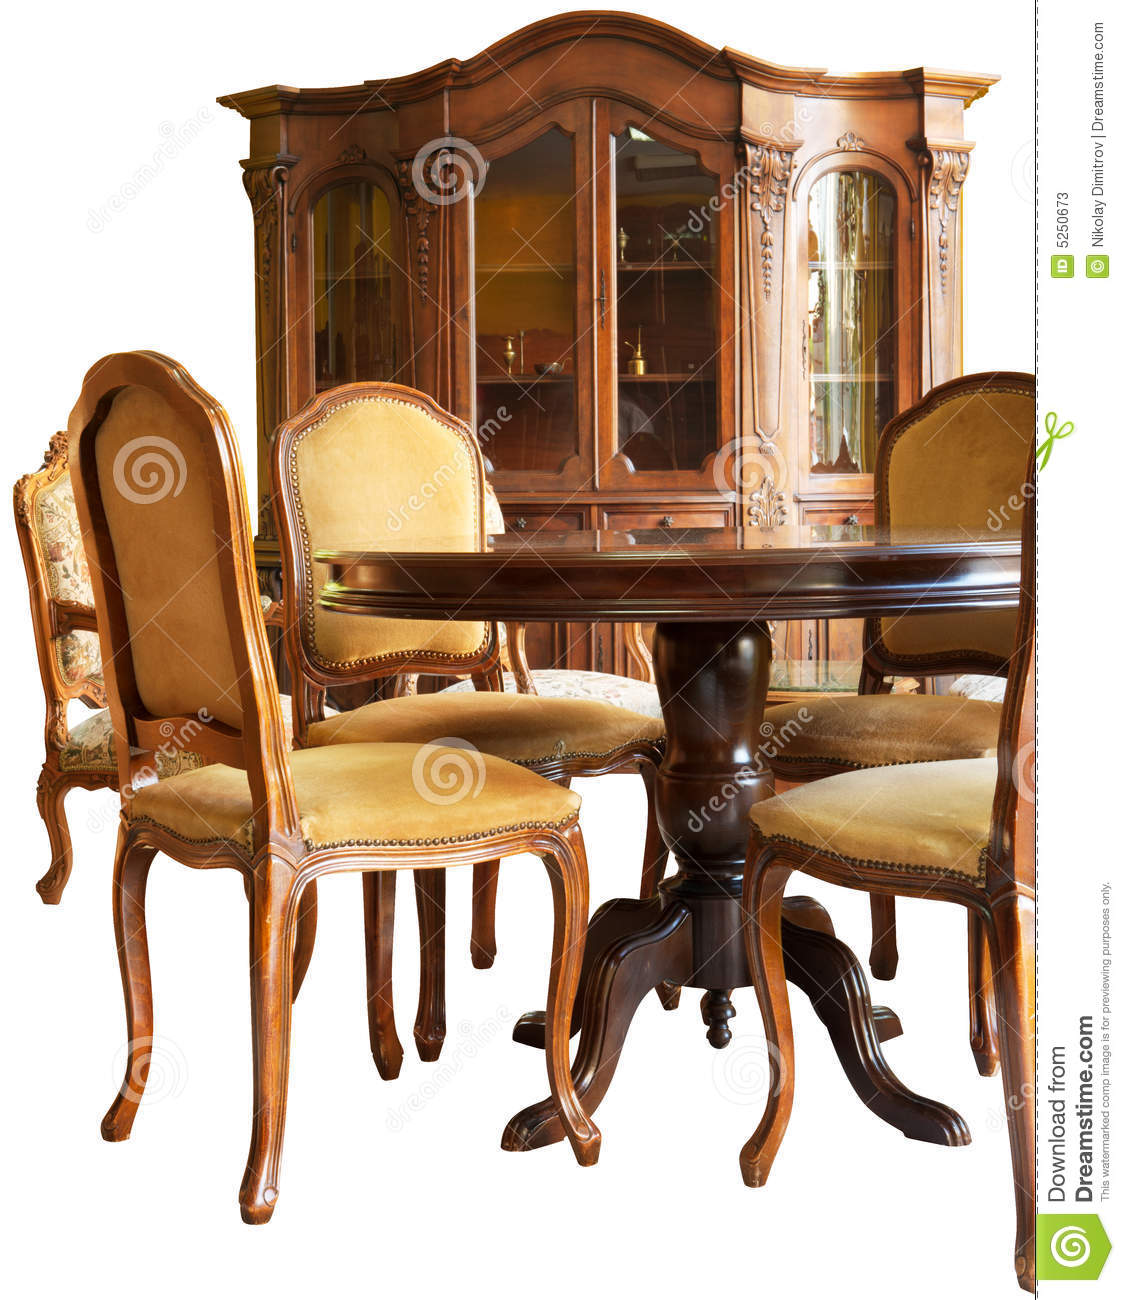 Old Classic Wooden Furniture With Handmade Woodcar Stock Image Image 5250673